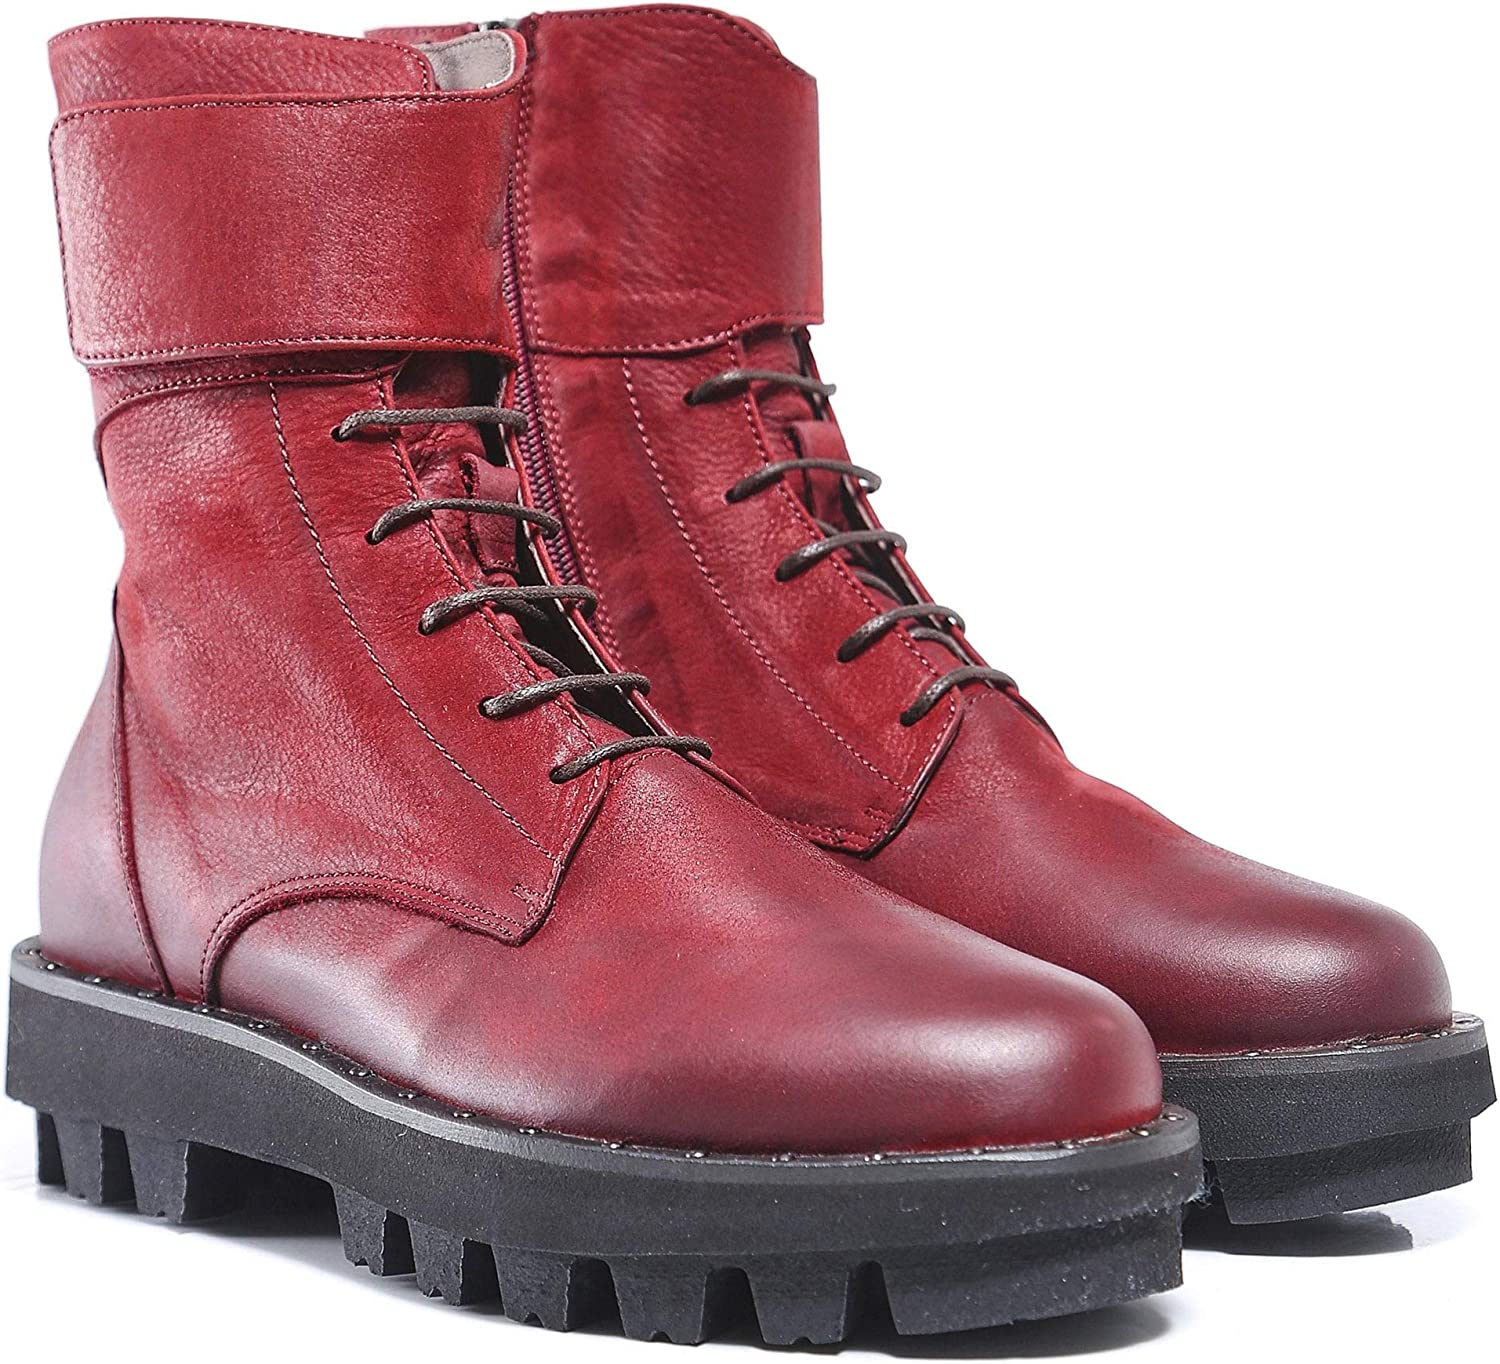 Lofina Women's Leather Lace up Boots Red